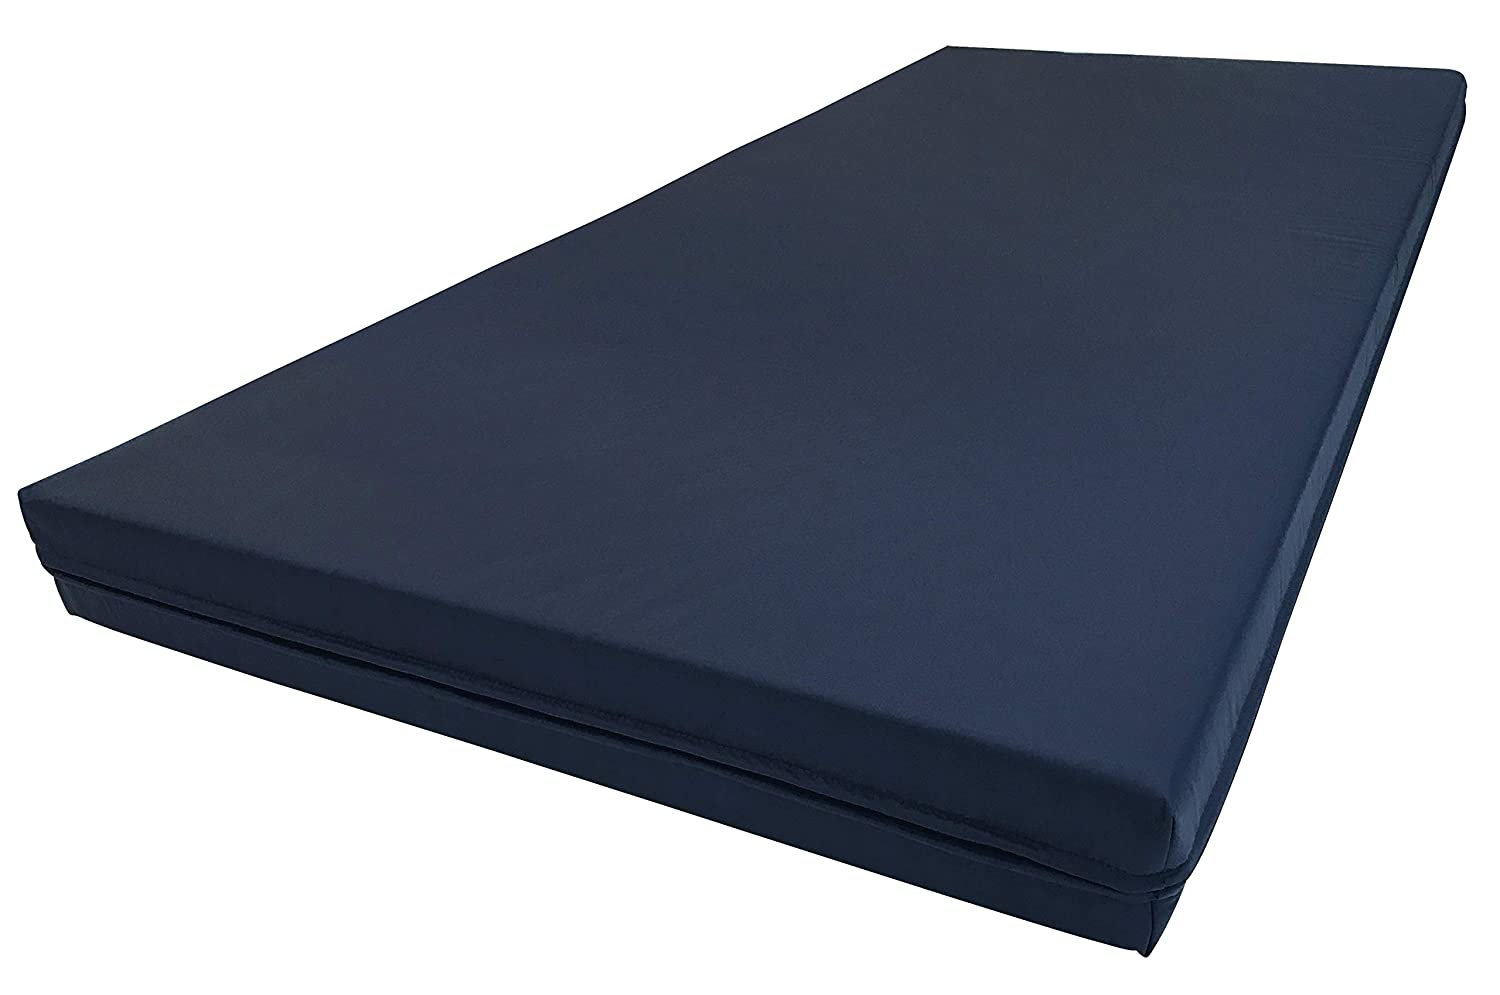 Everynight Road Deluxe Dual Sided Economical Medium-Firm Foam Truck Mattress Many 75 x 32 x 5